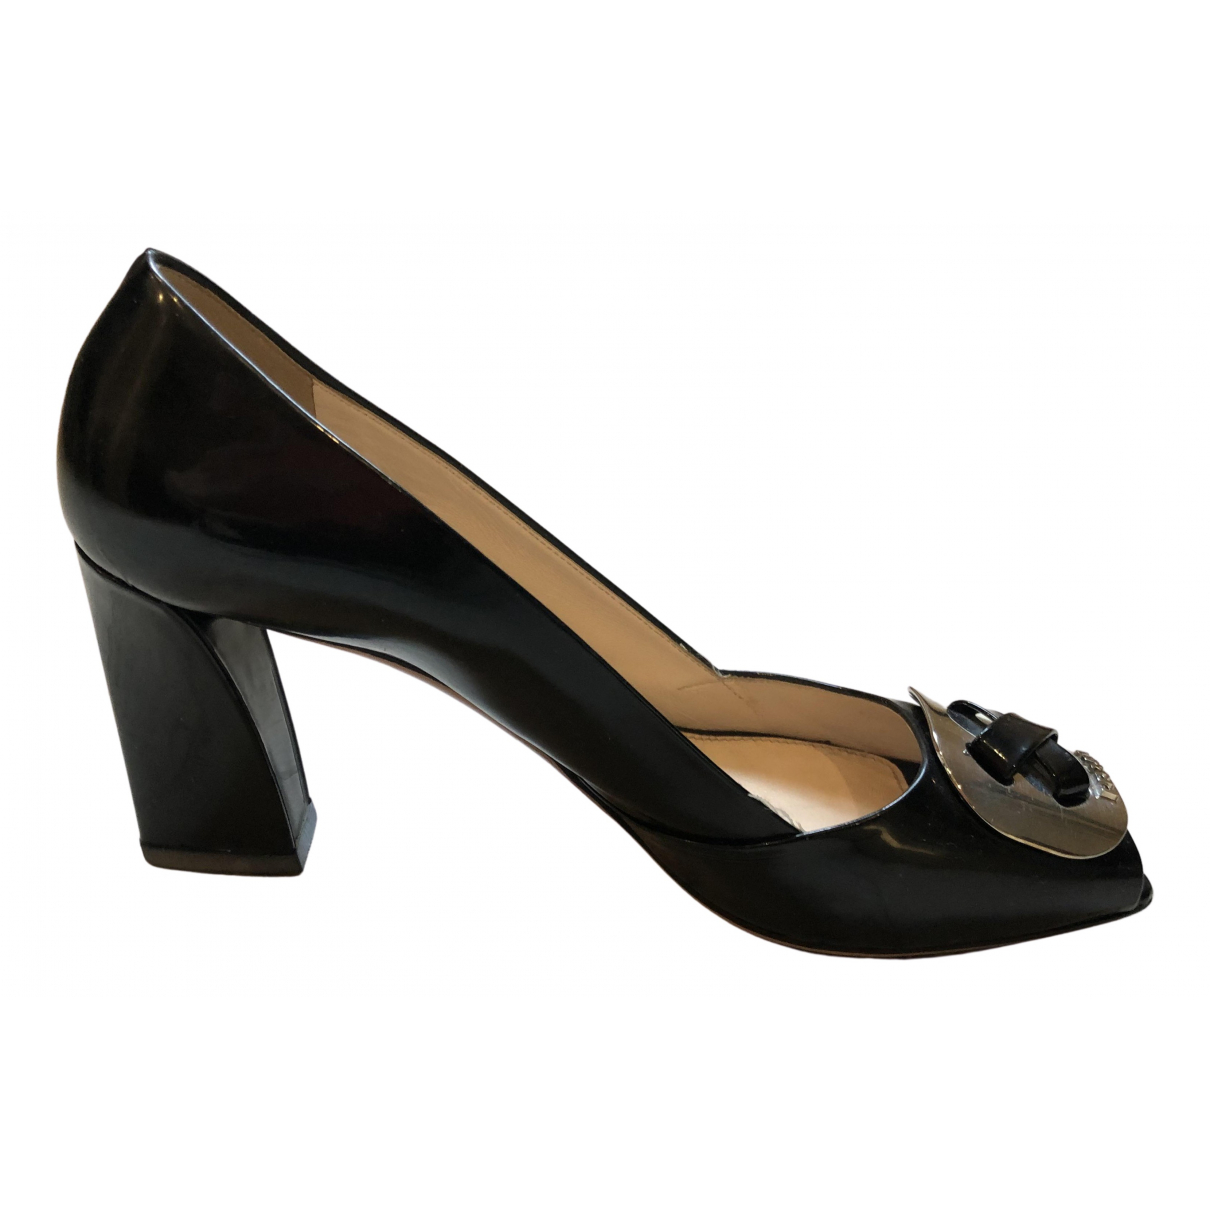 Prada \N Pumps in  Schwarz Lackleder